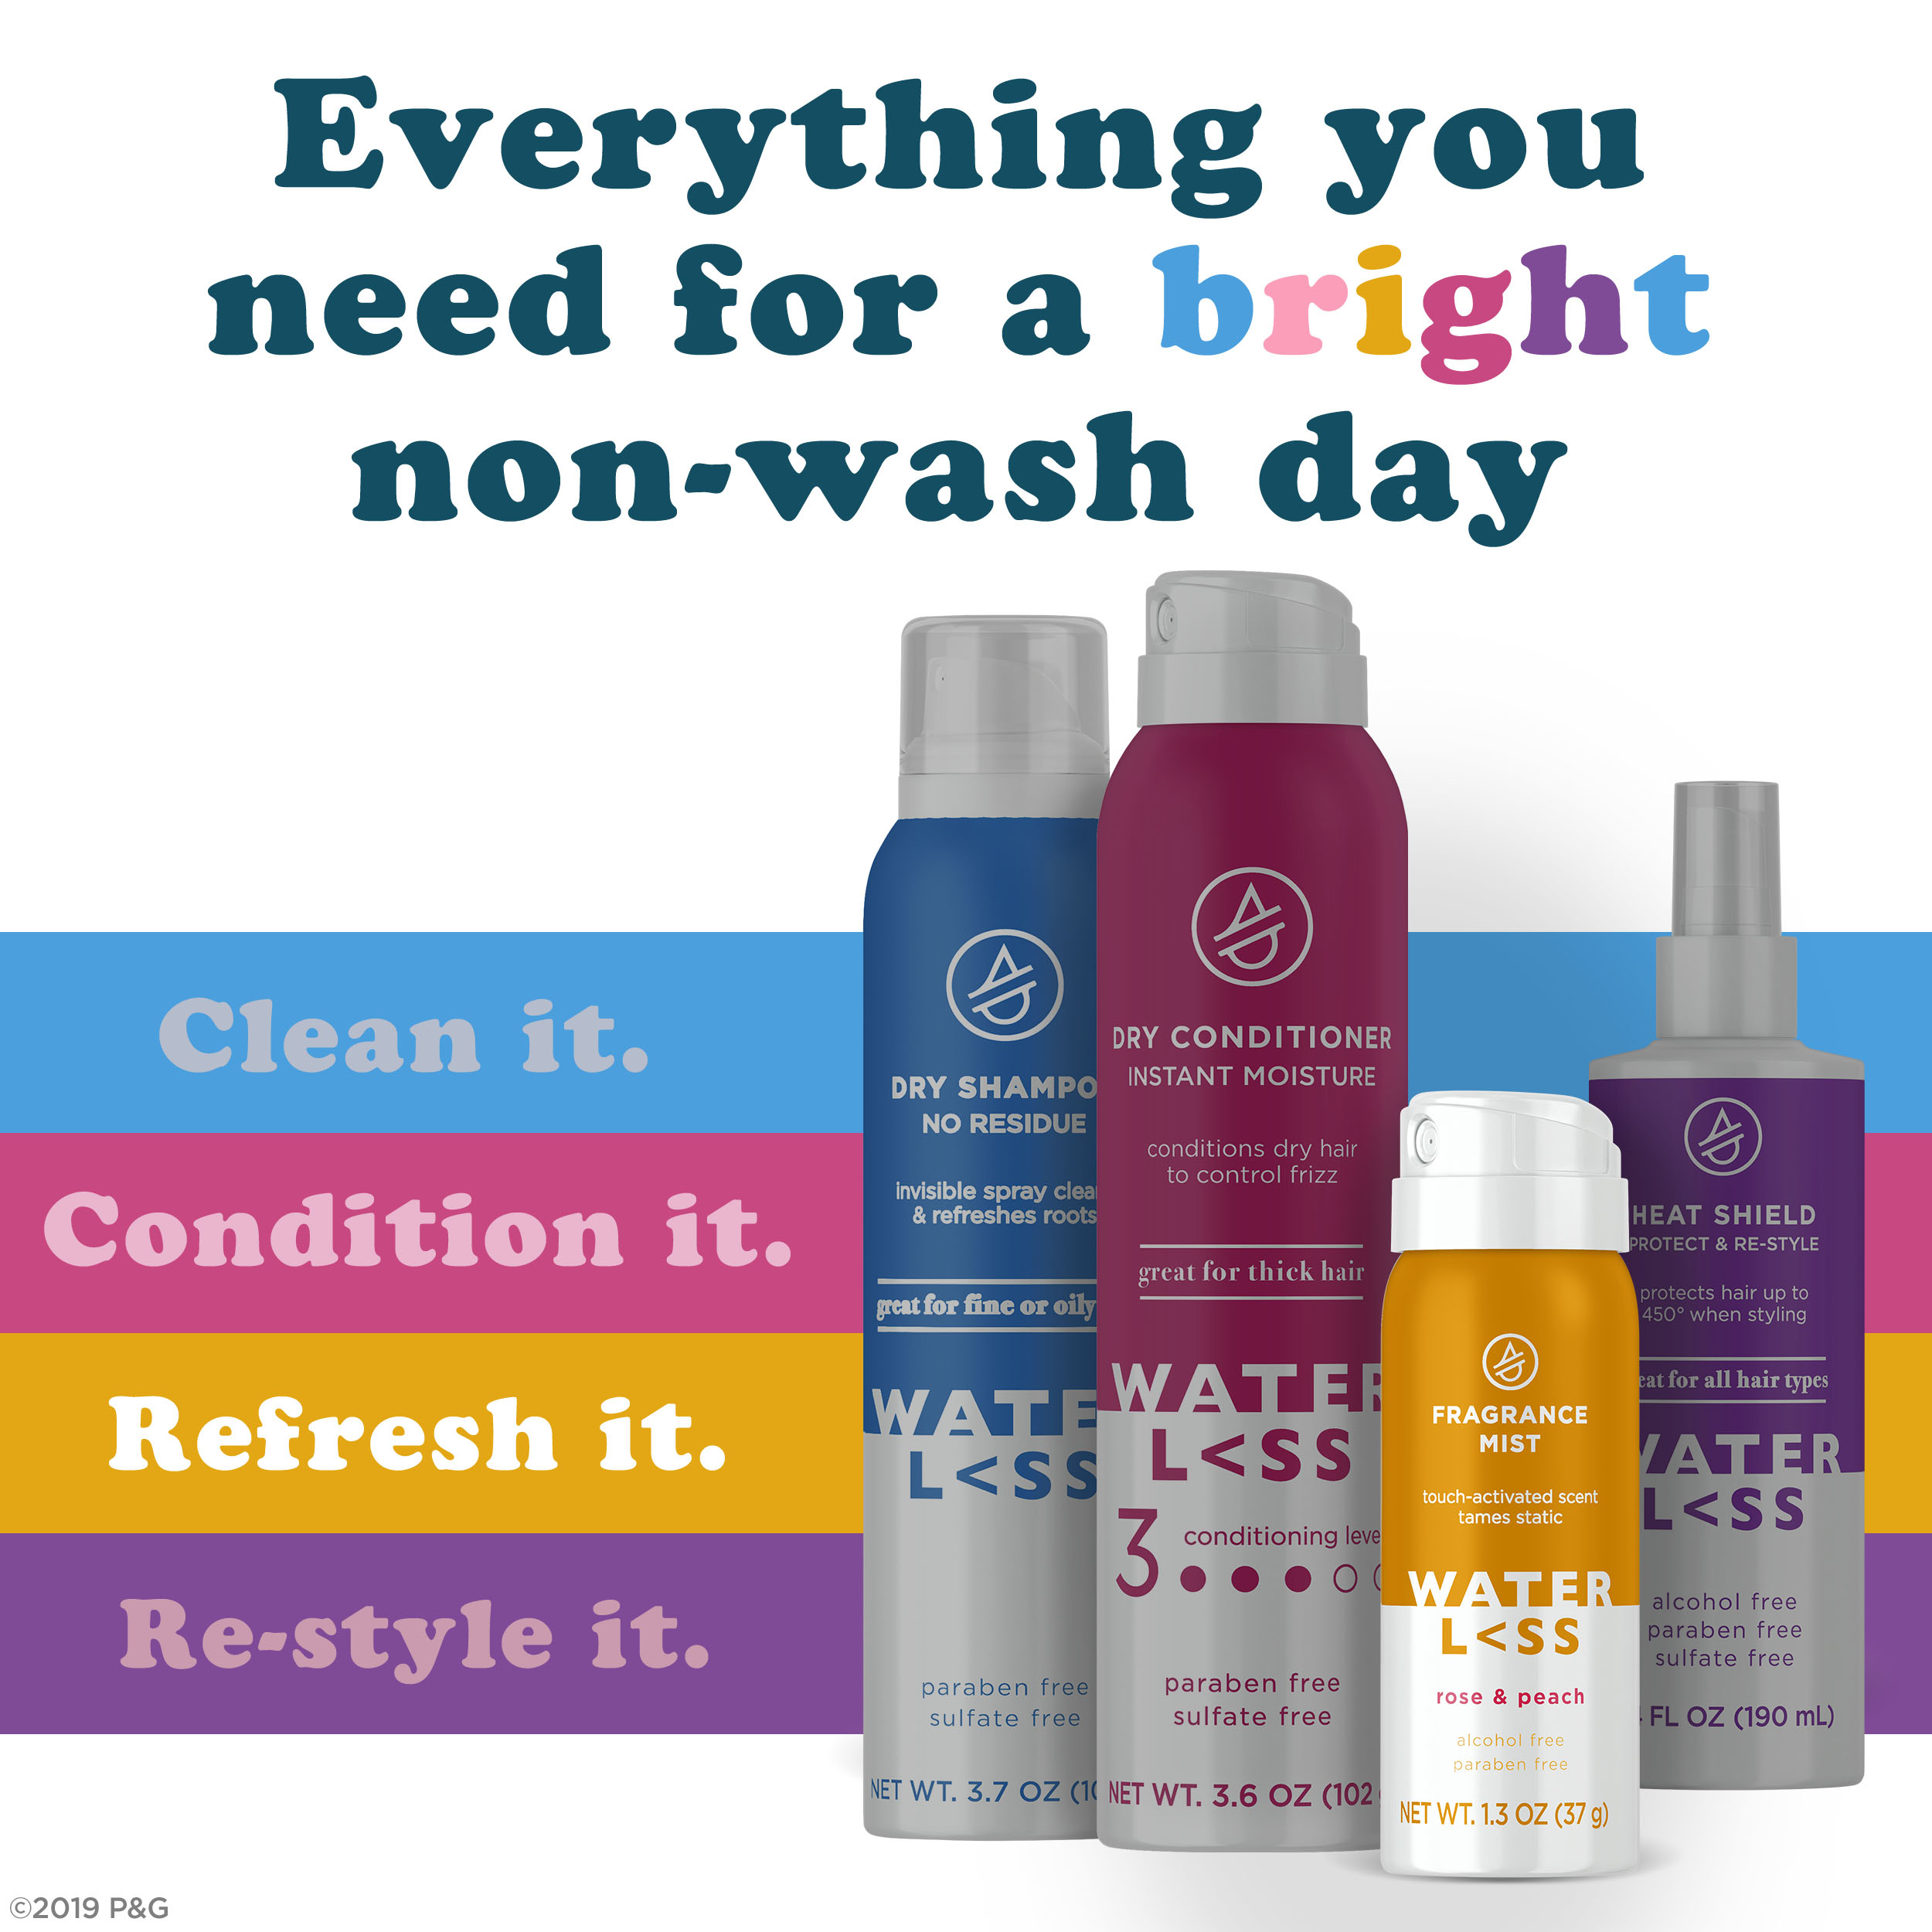 Everything you need for a bright non-wash day - Refresh it.